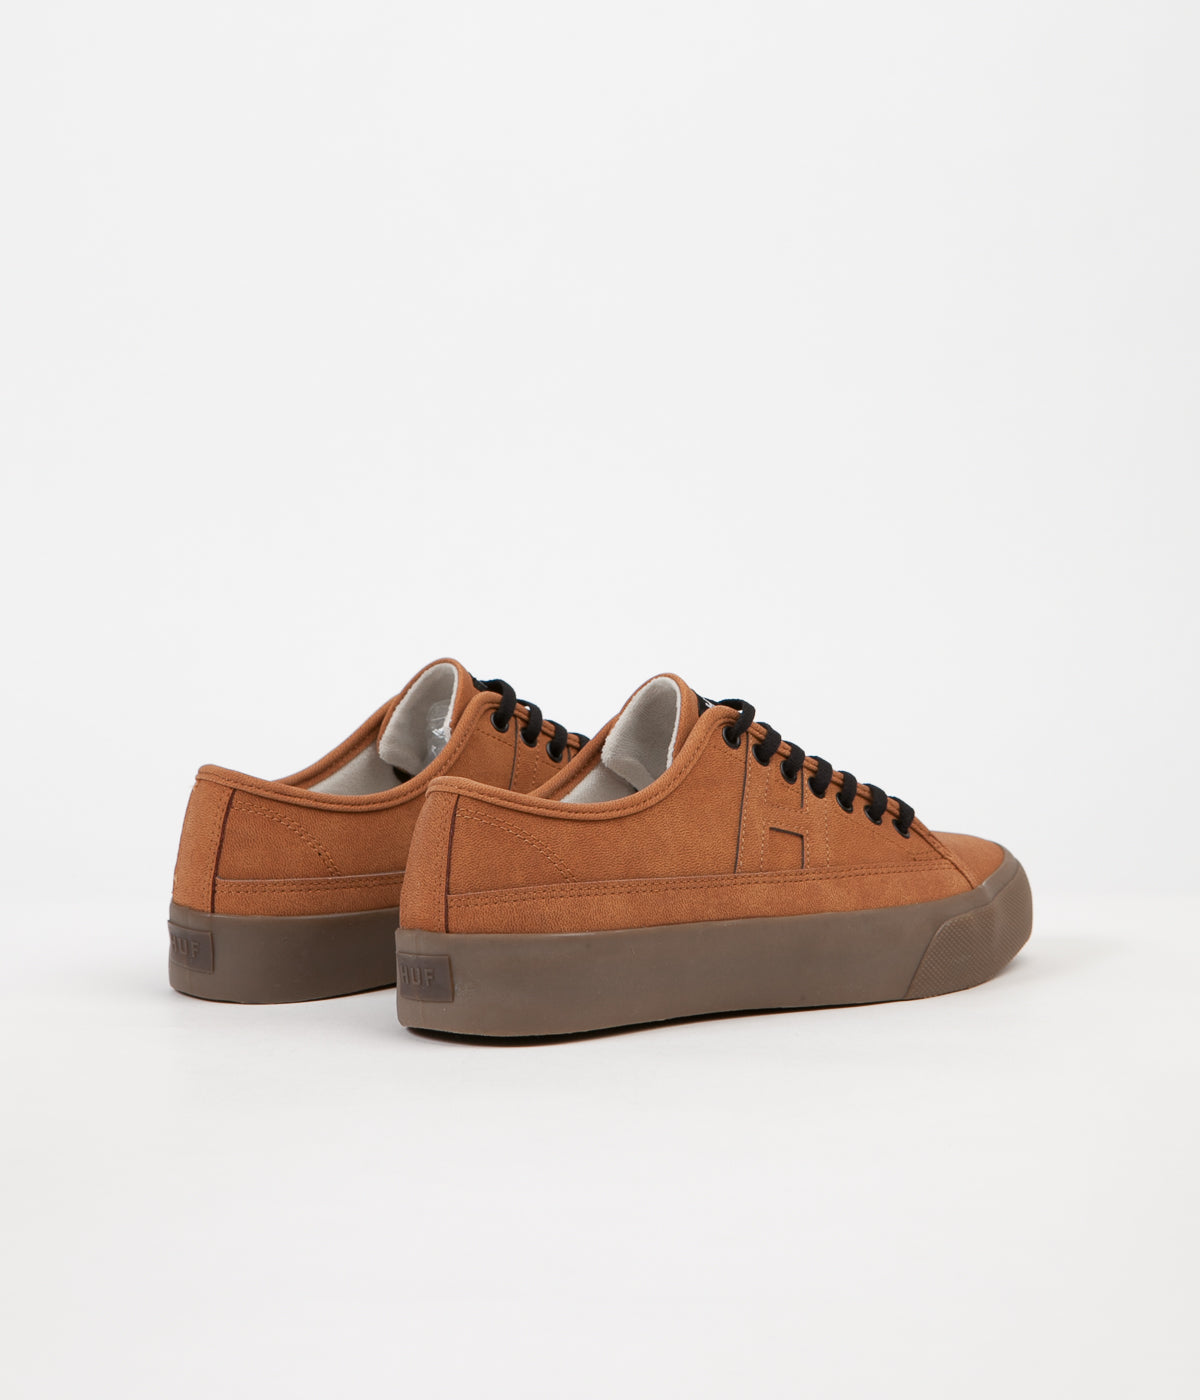 Hupper 2 Lo Trainers In Tan - Tan HUF niZP5c